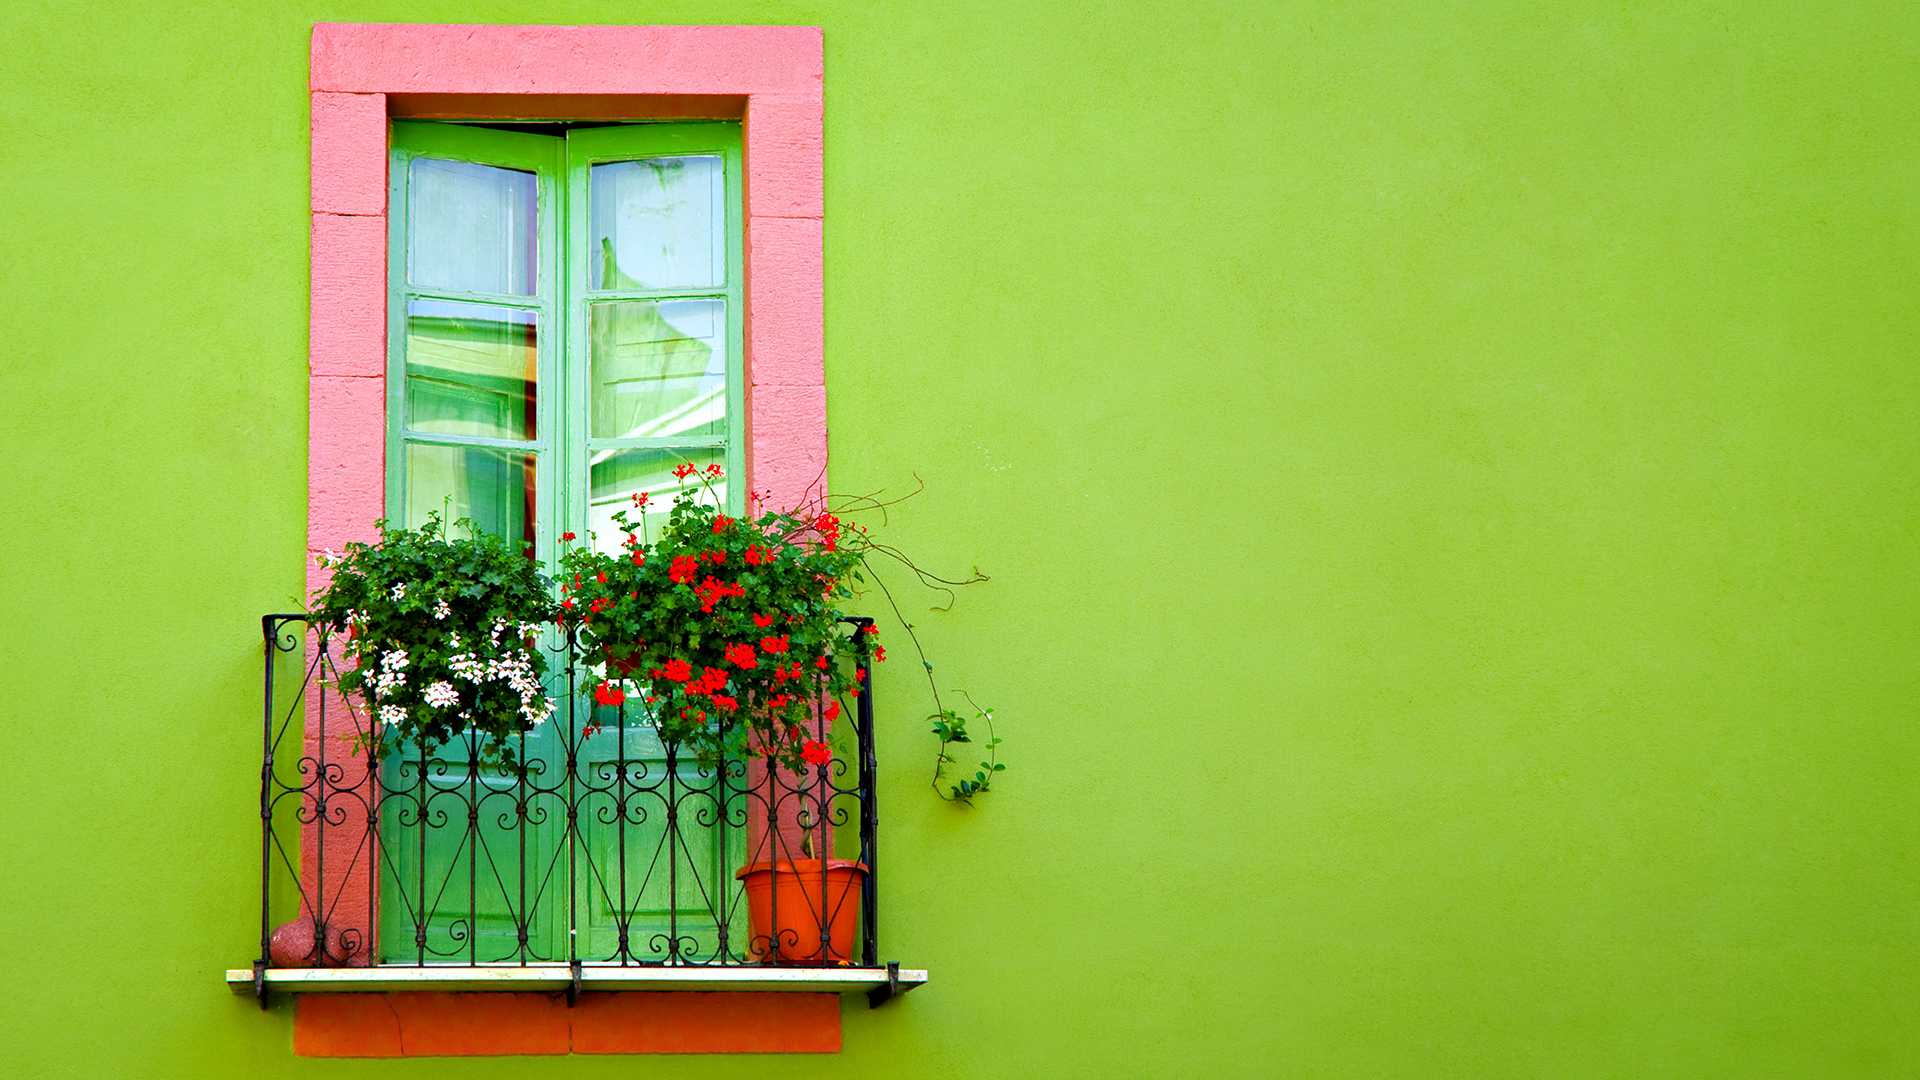 Green Wall Window Wallpapers HD Wallpapers 1920x1080